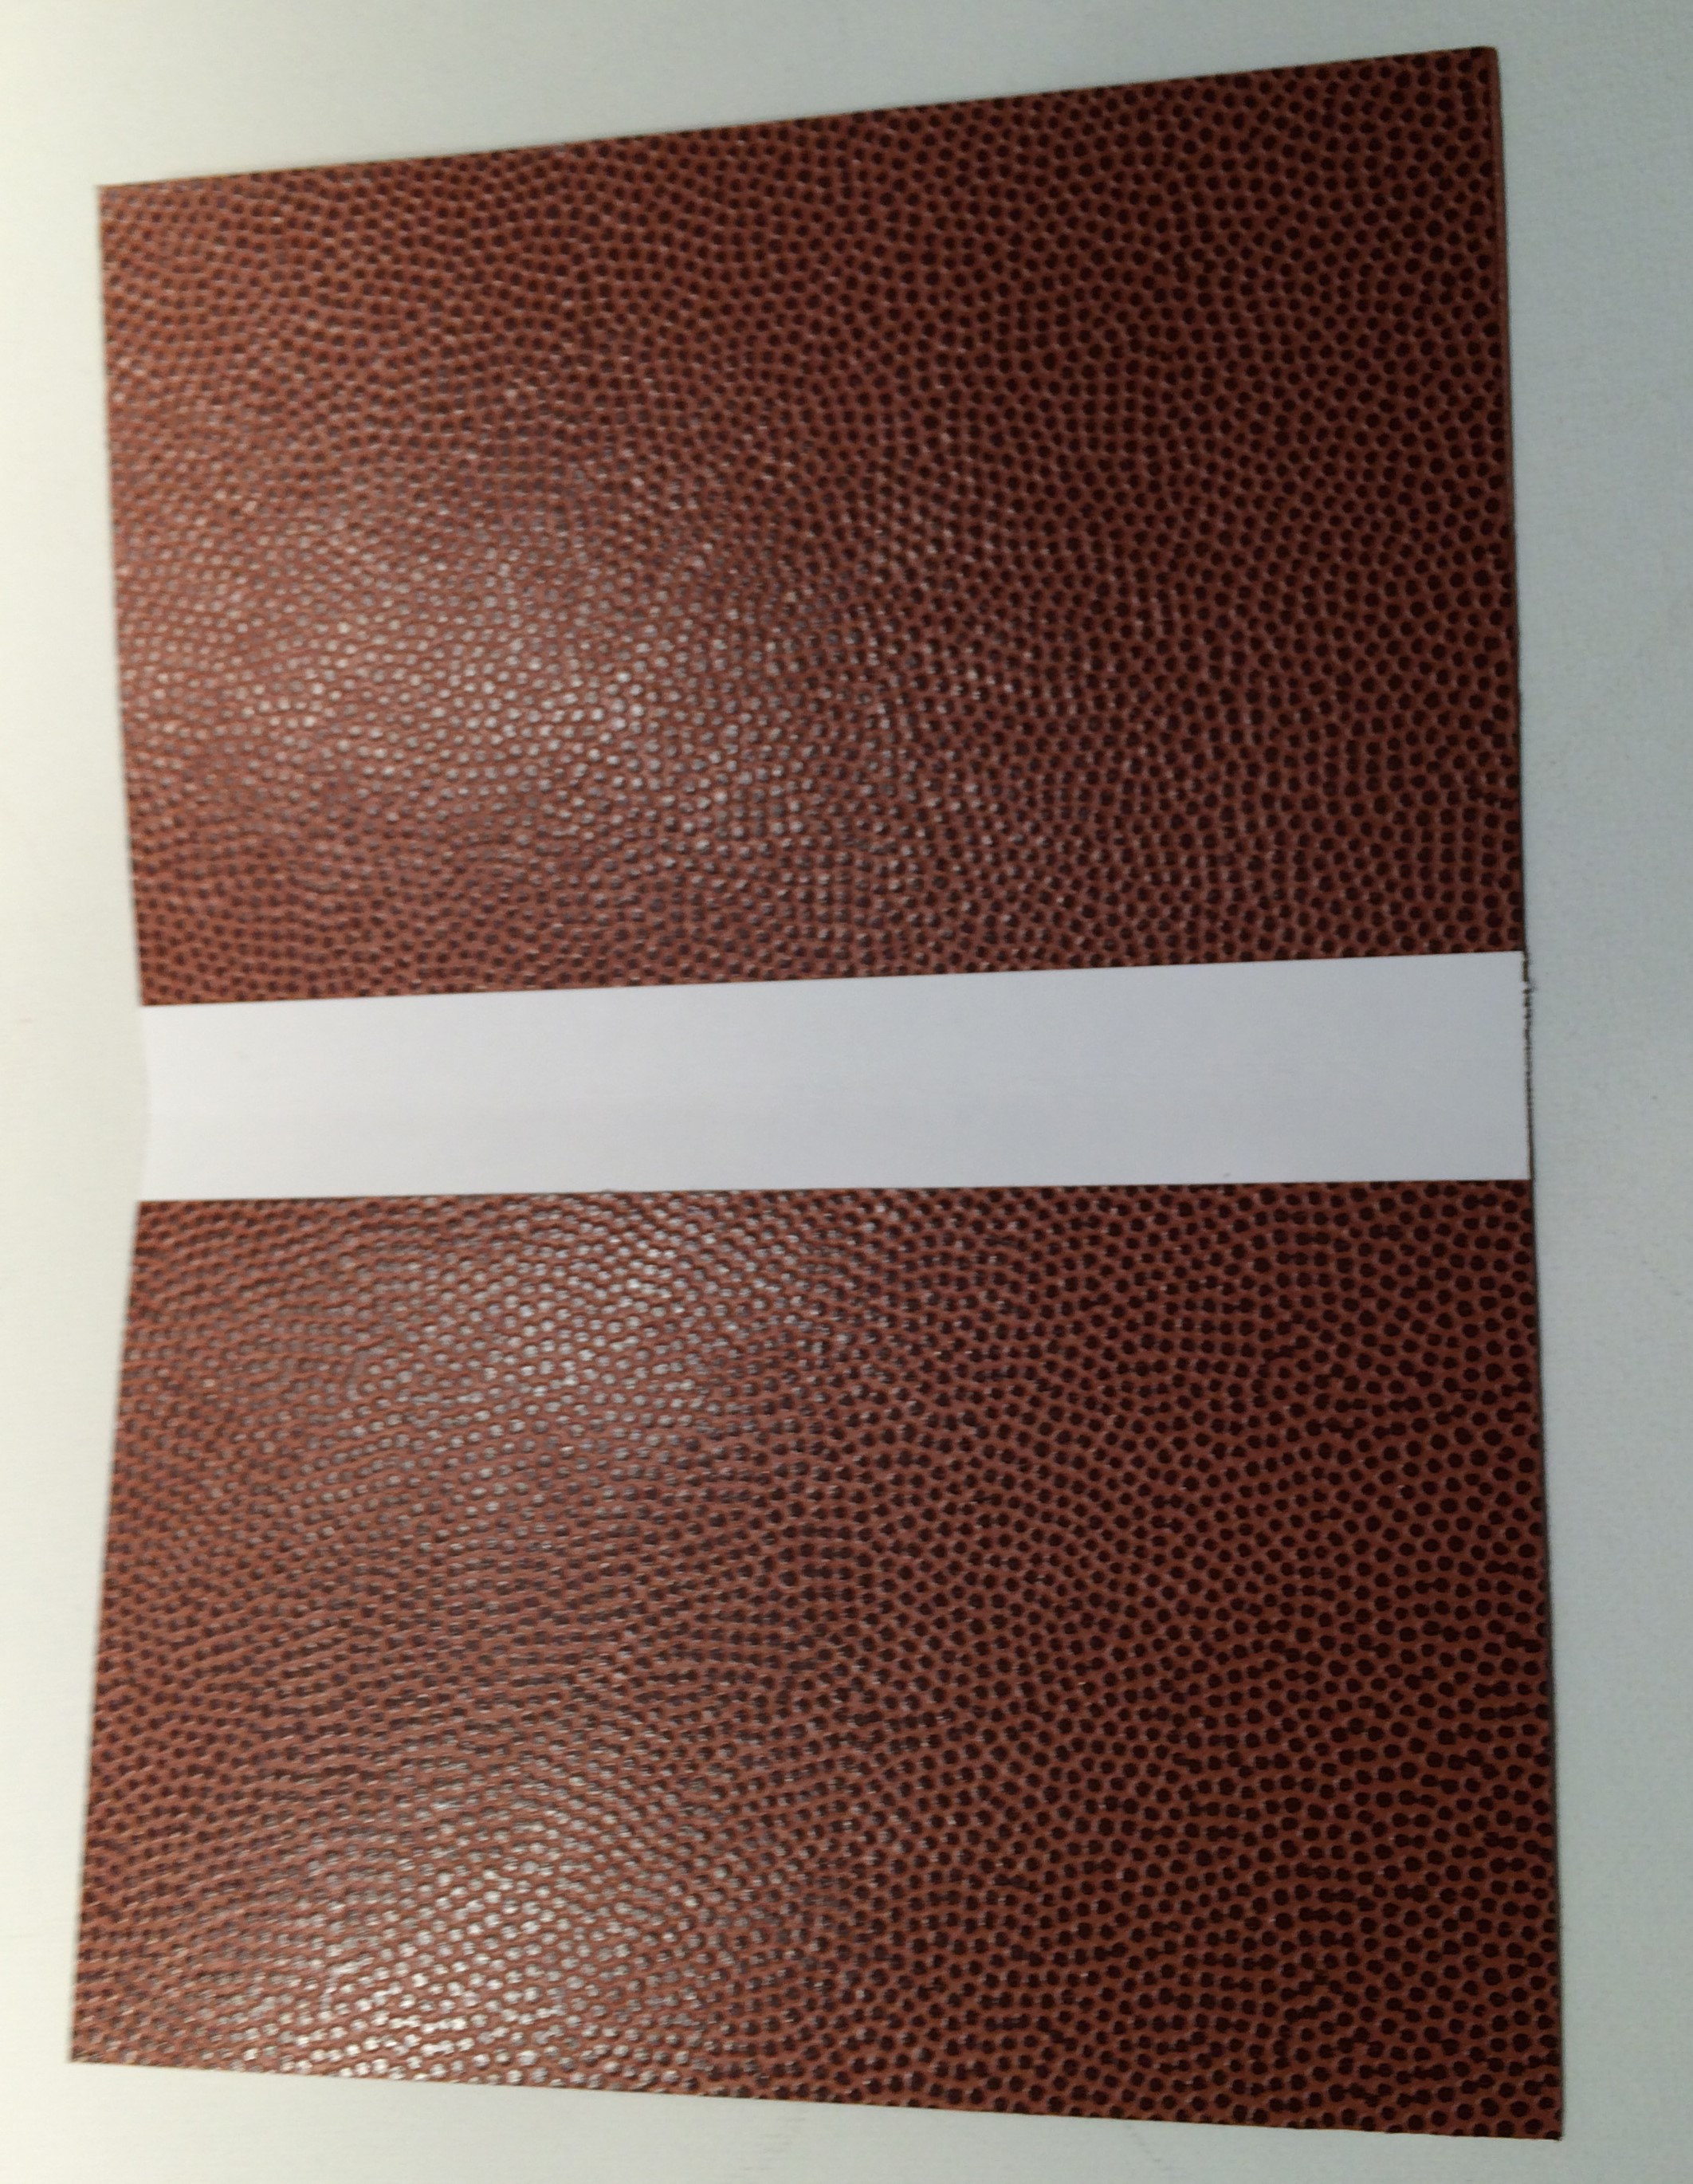 """We took two more 5"""" x 7"""" pieces of Football paper and secured them together. We cut a 1"""" strip of white card stock and glued another piece on top of it and then set this down the center of the two 5"""" x 5"""" panels to create a folder."""